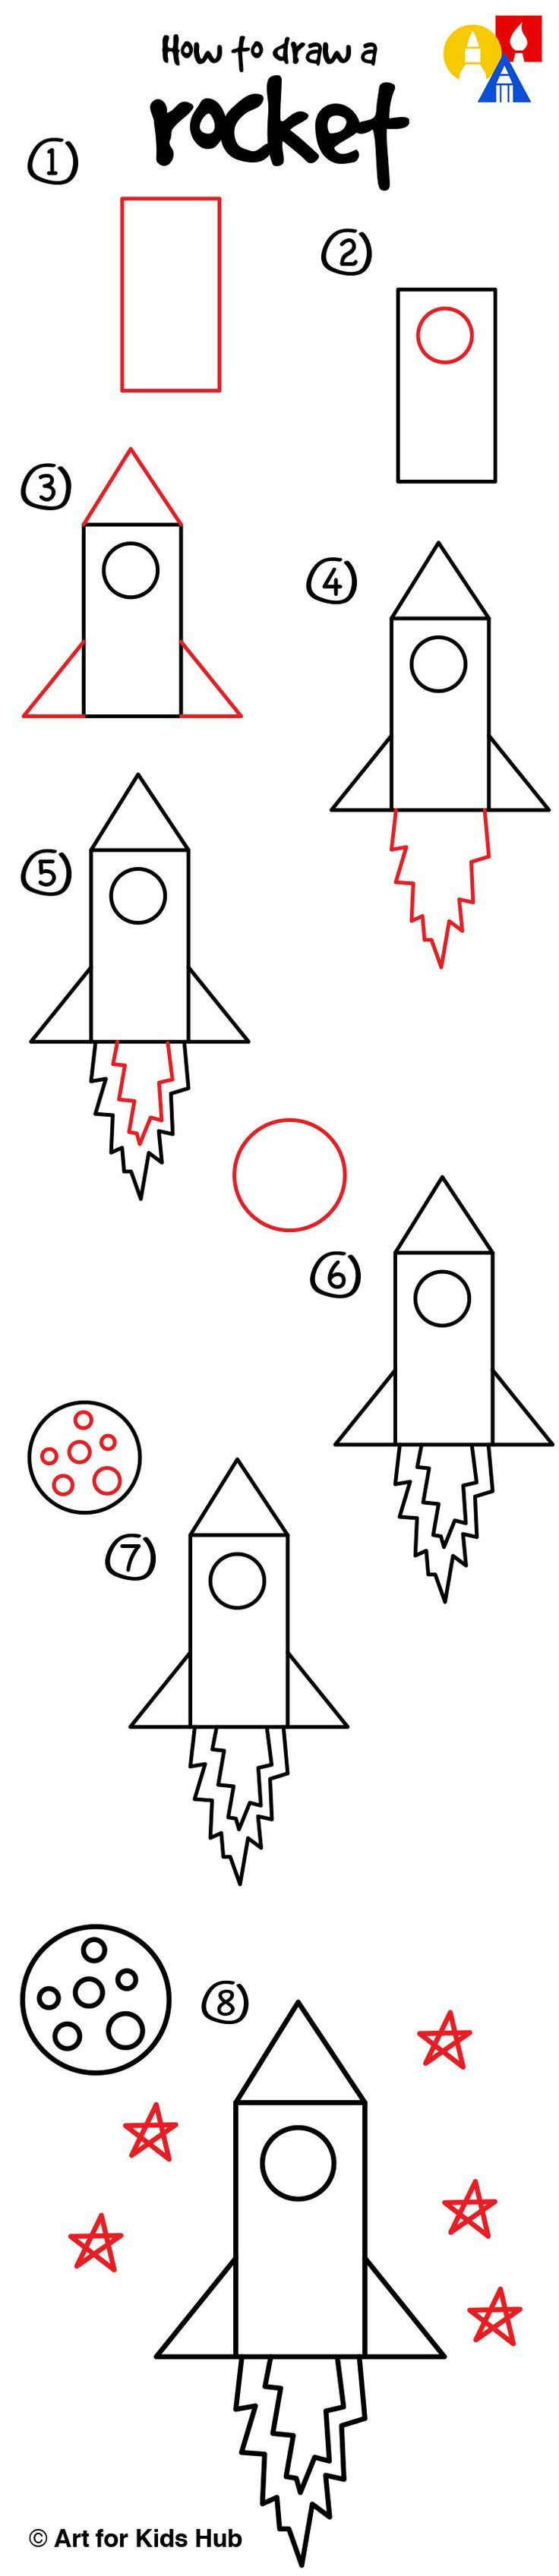 how to draw a rocket ship step by step